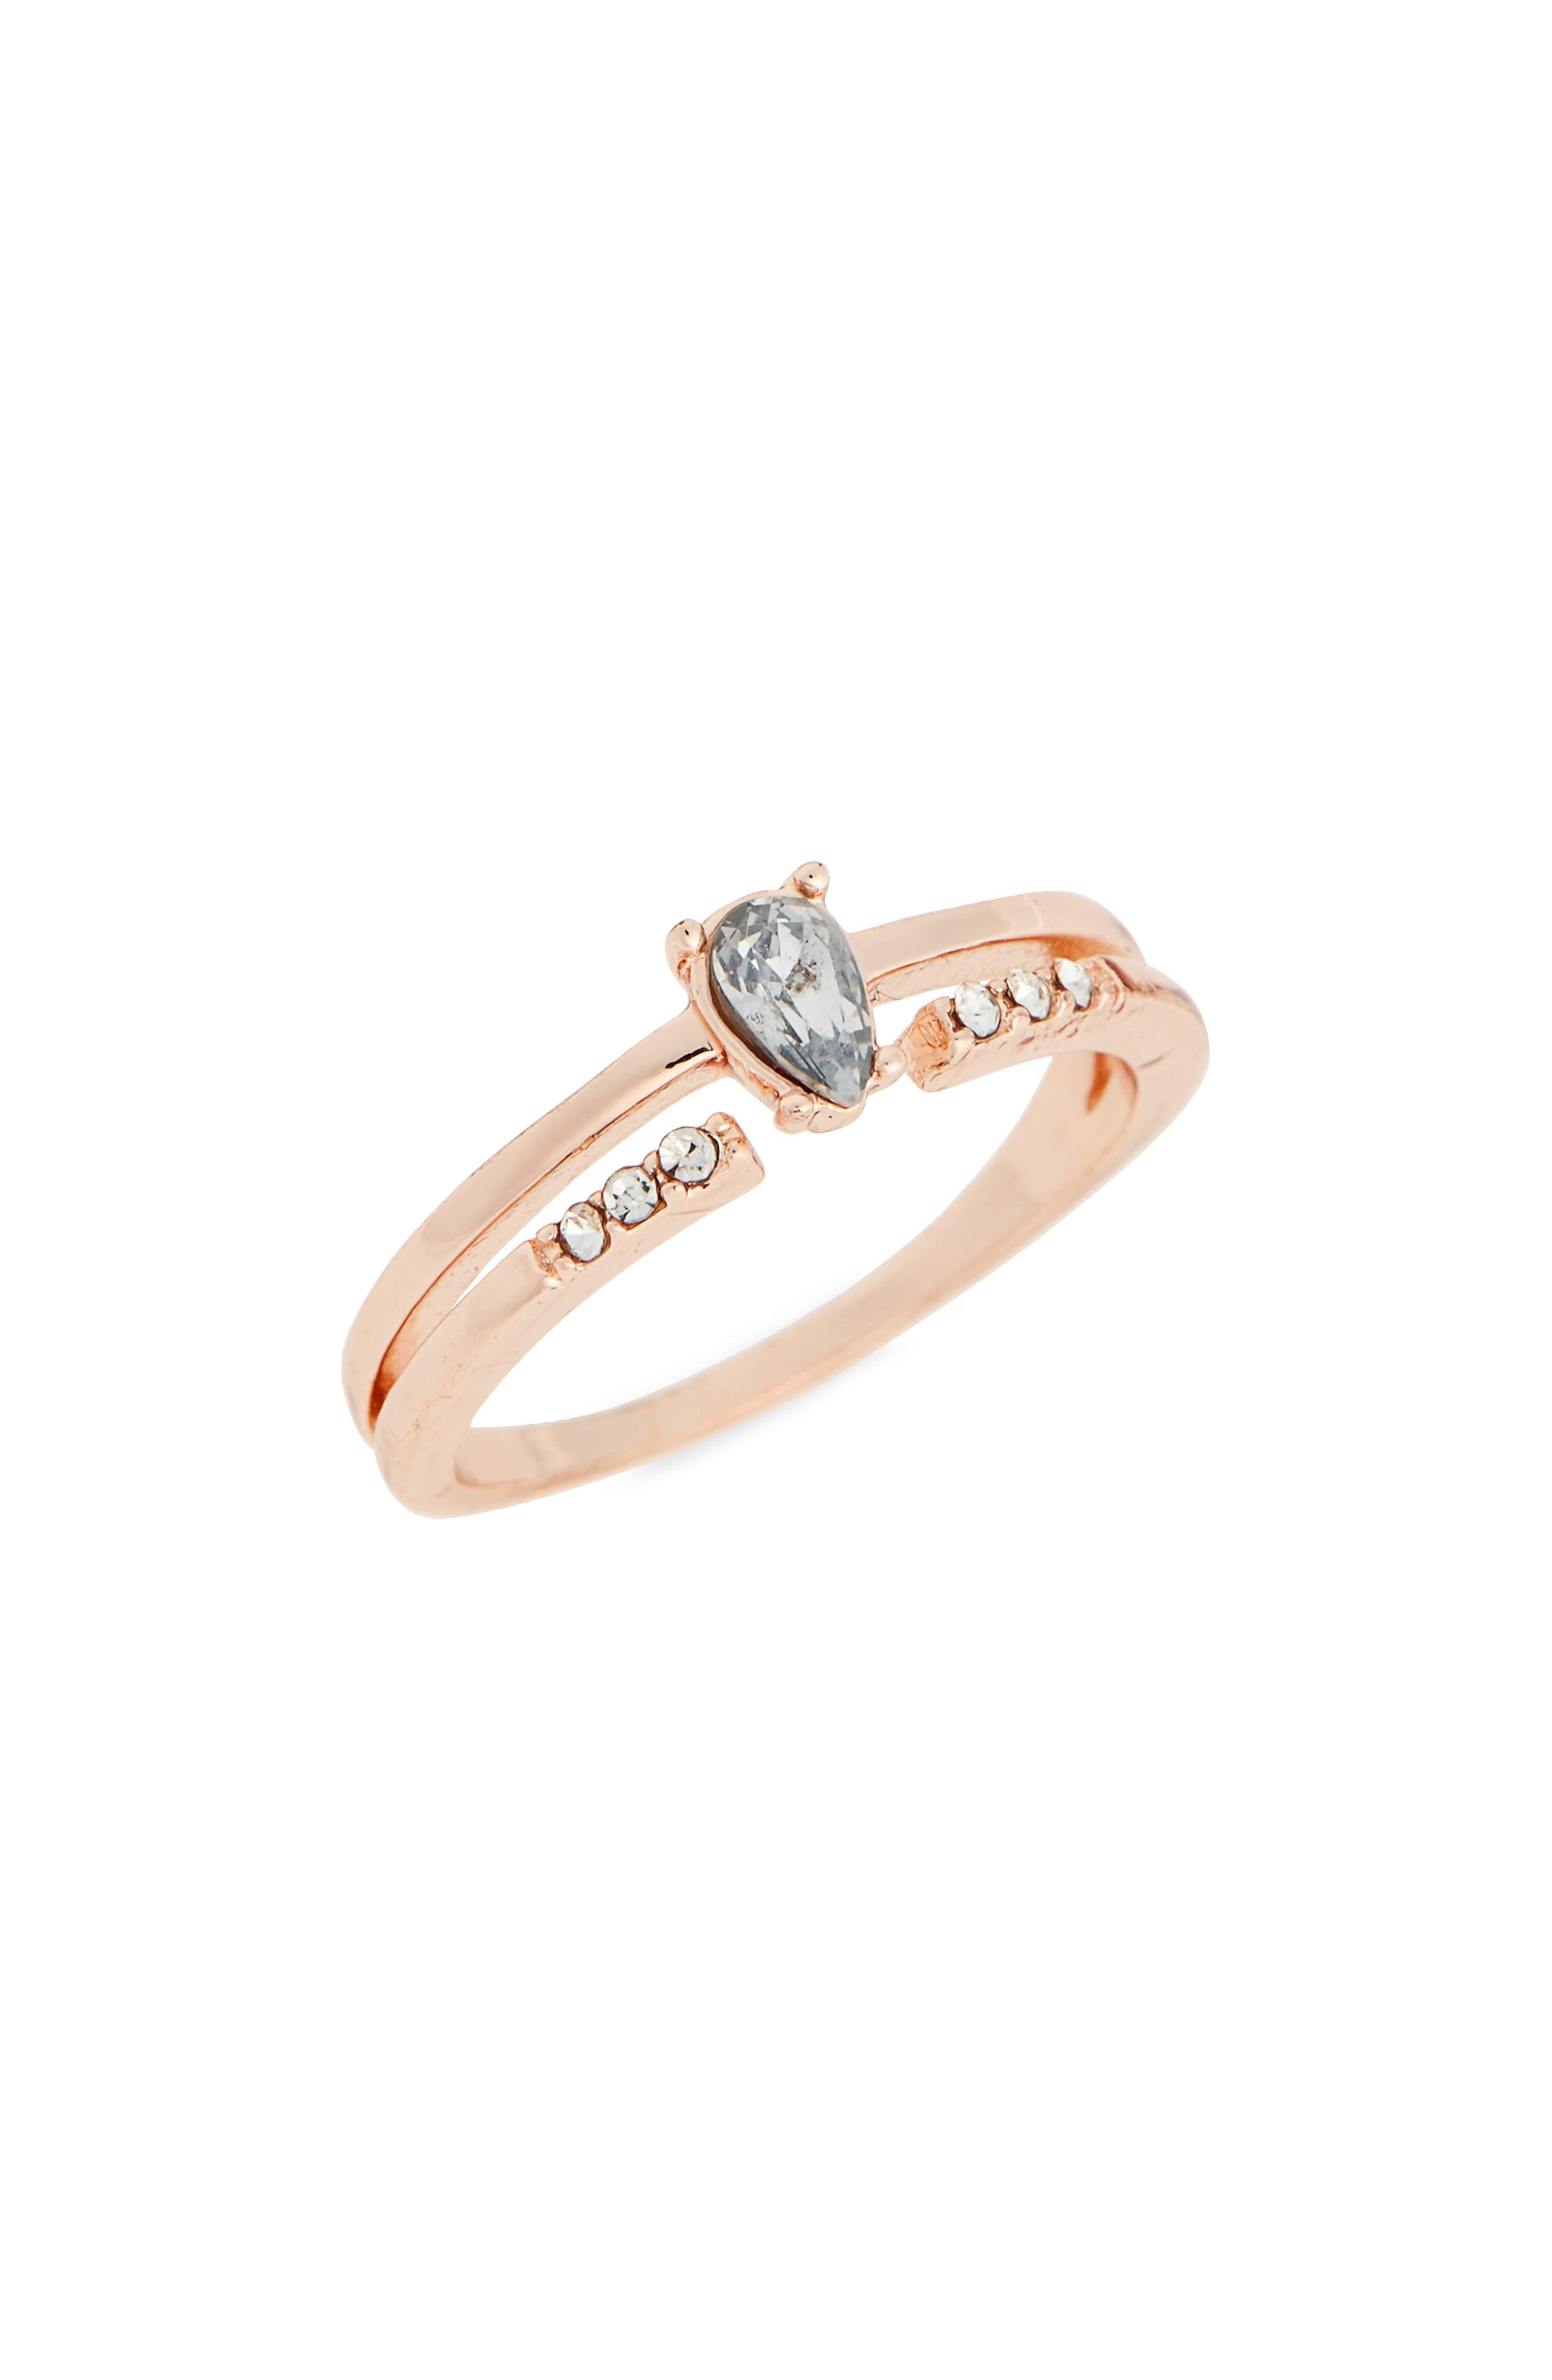 Fine Double Band Stone Ring,                             Main thumbnail 1, color,                             Rose Gold